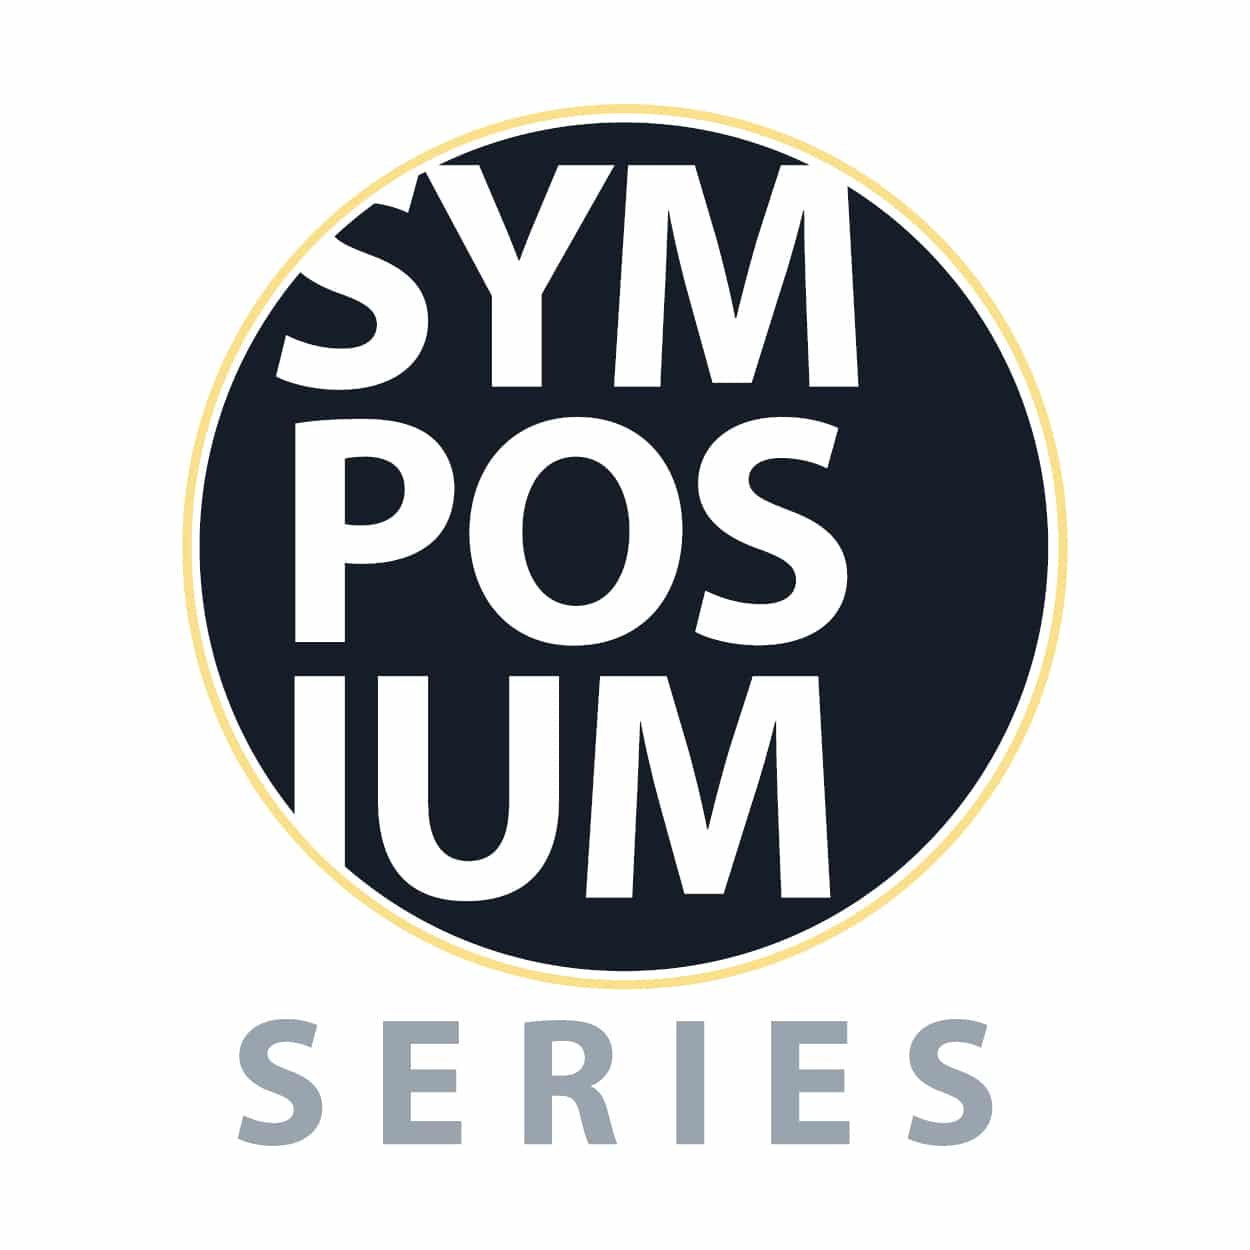 Symposium Series logo